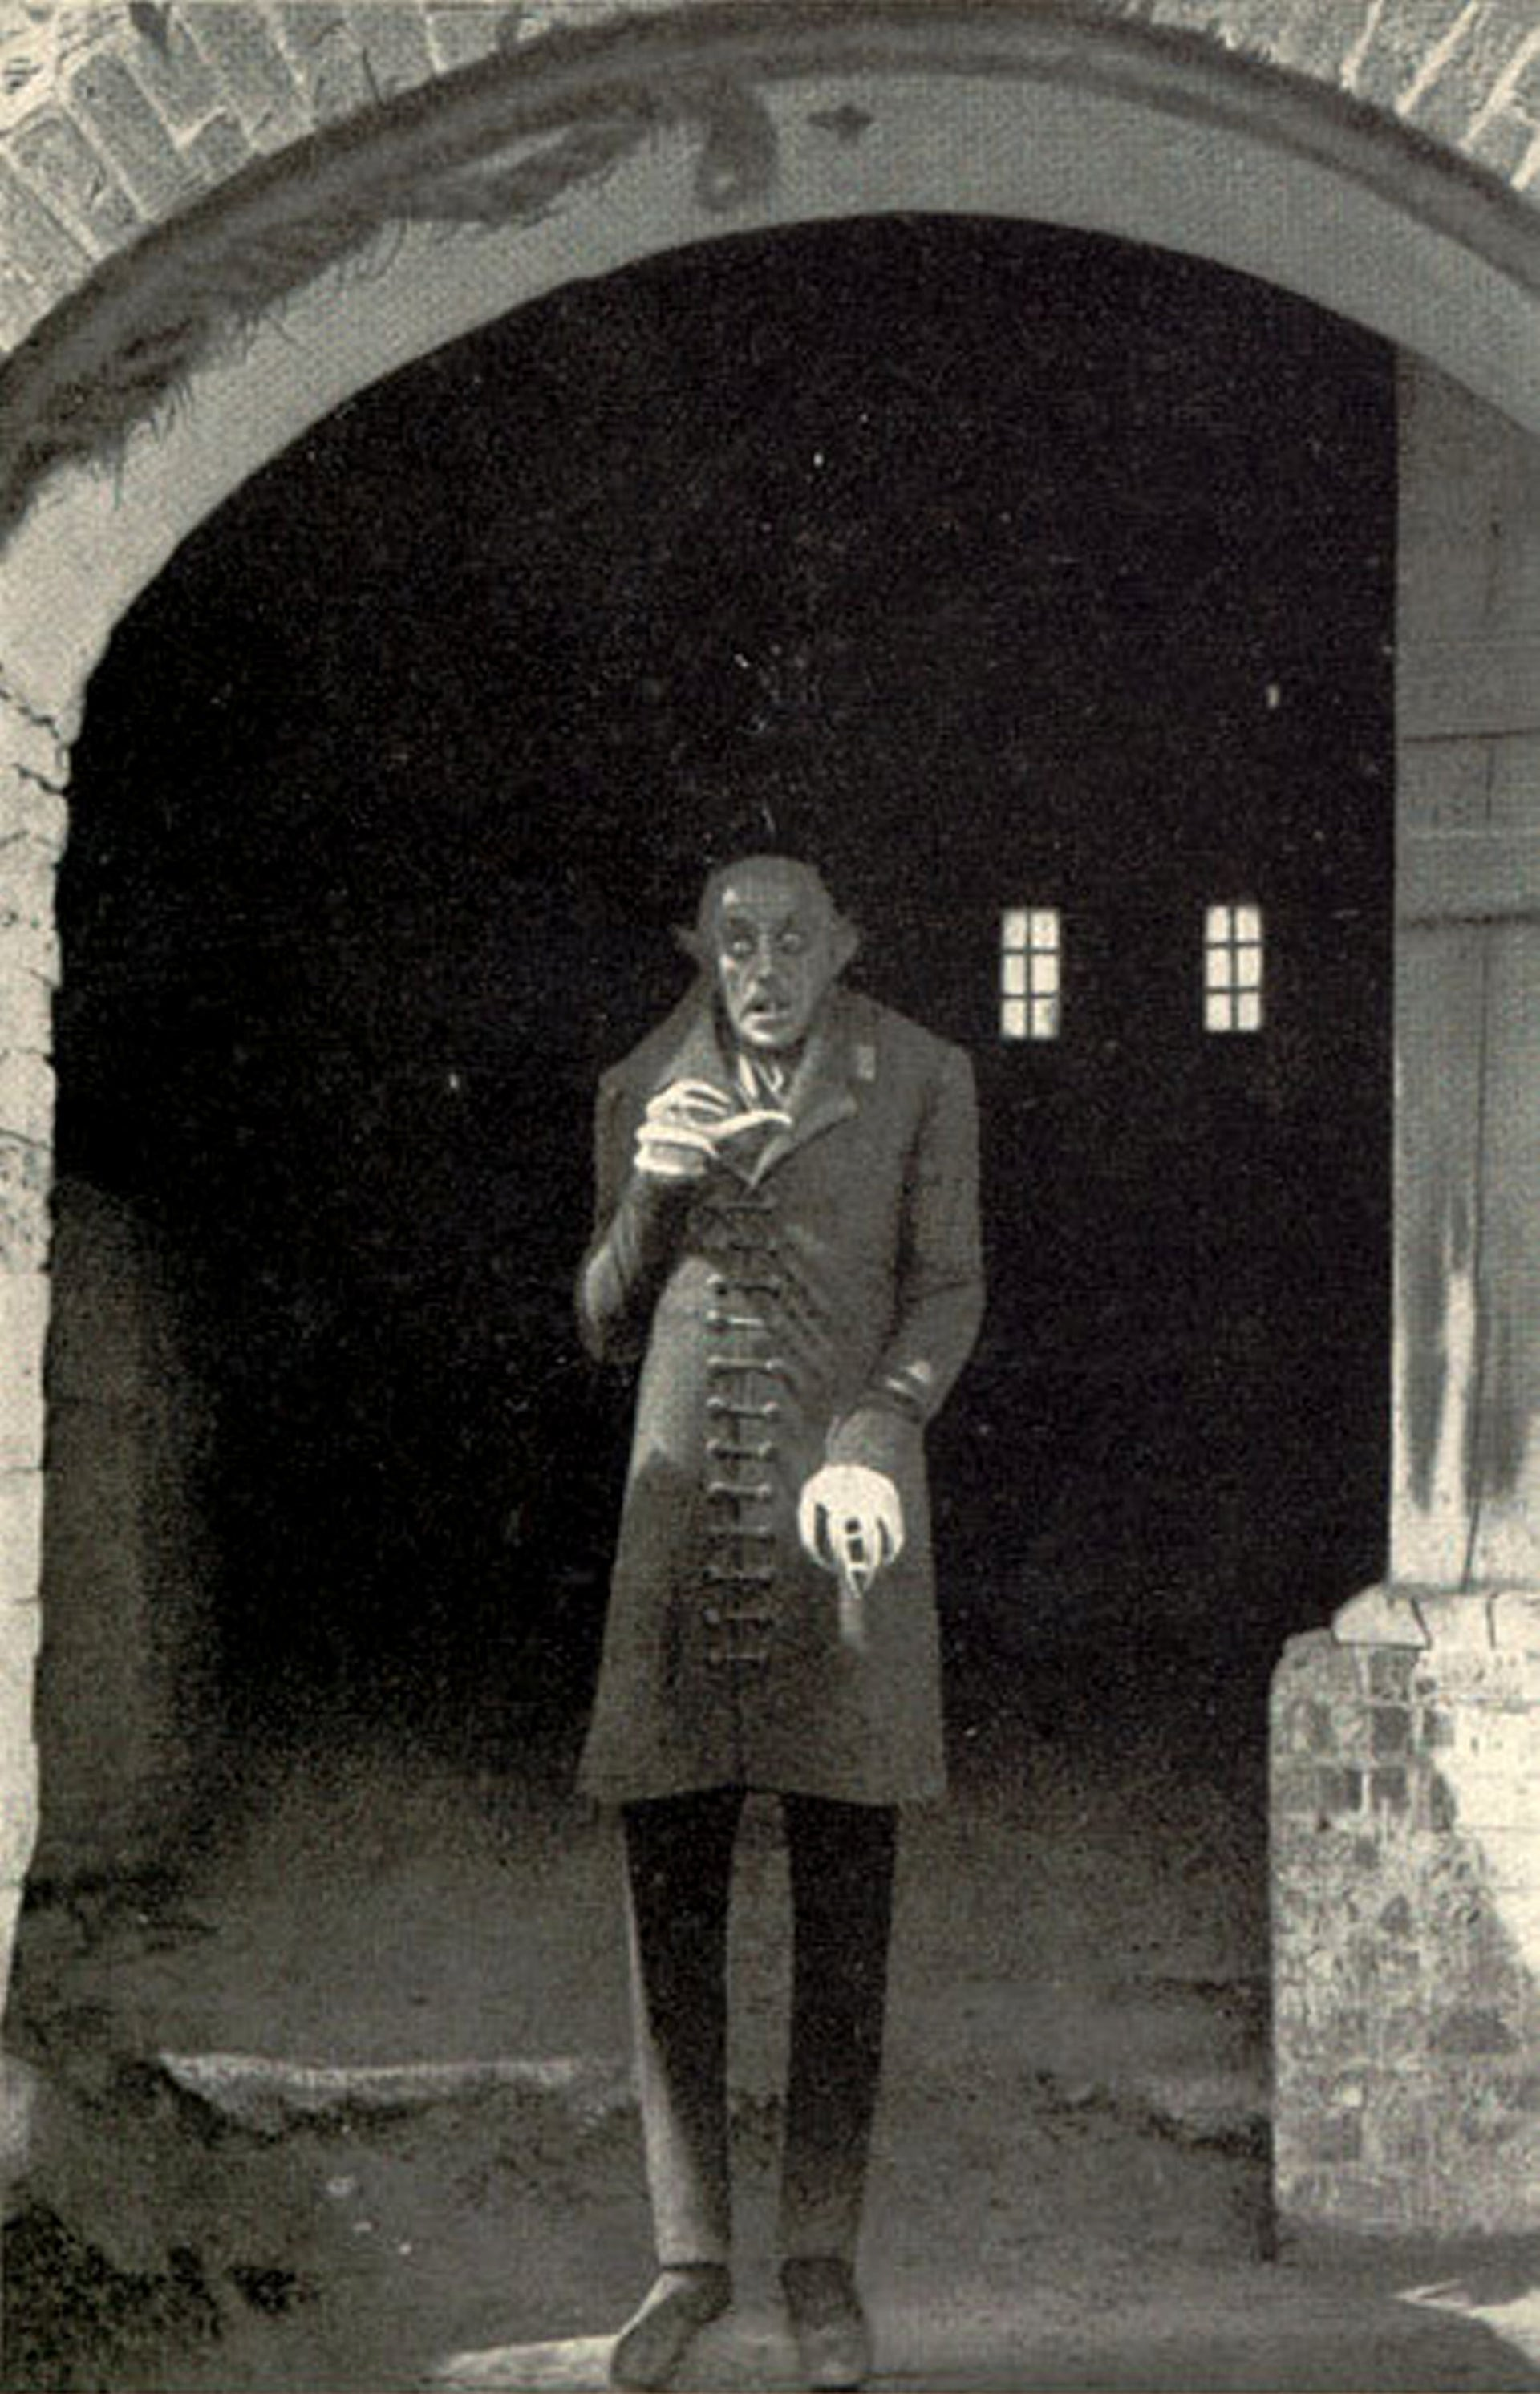 The modern-day vampire in the 1922 silent horror film Nosferatu. Shown here is Max Schreck as Count Orlok